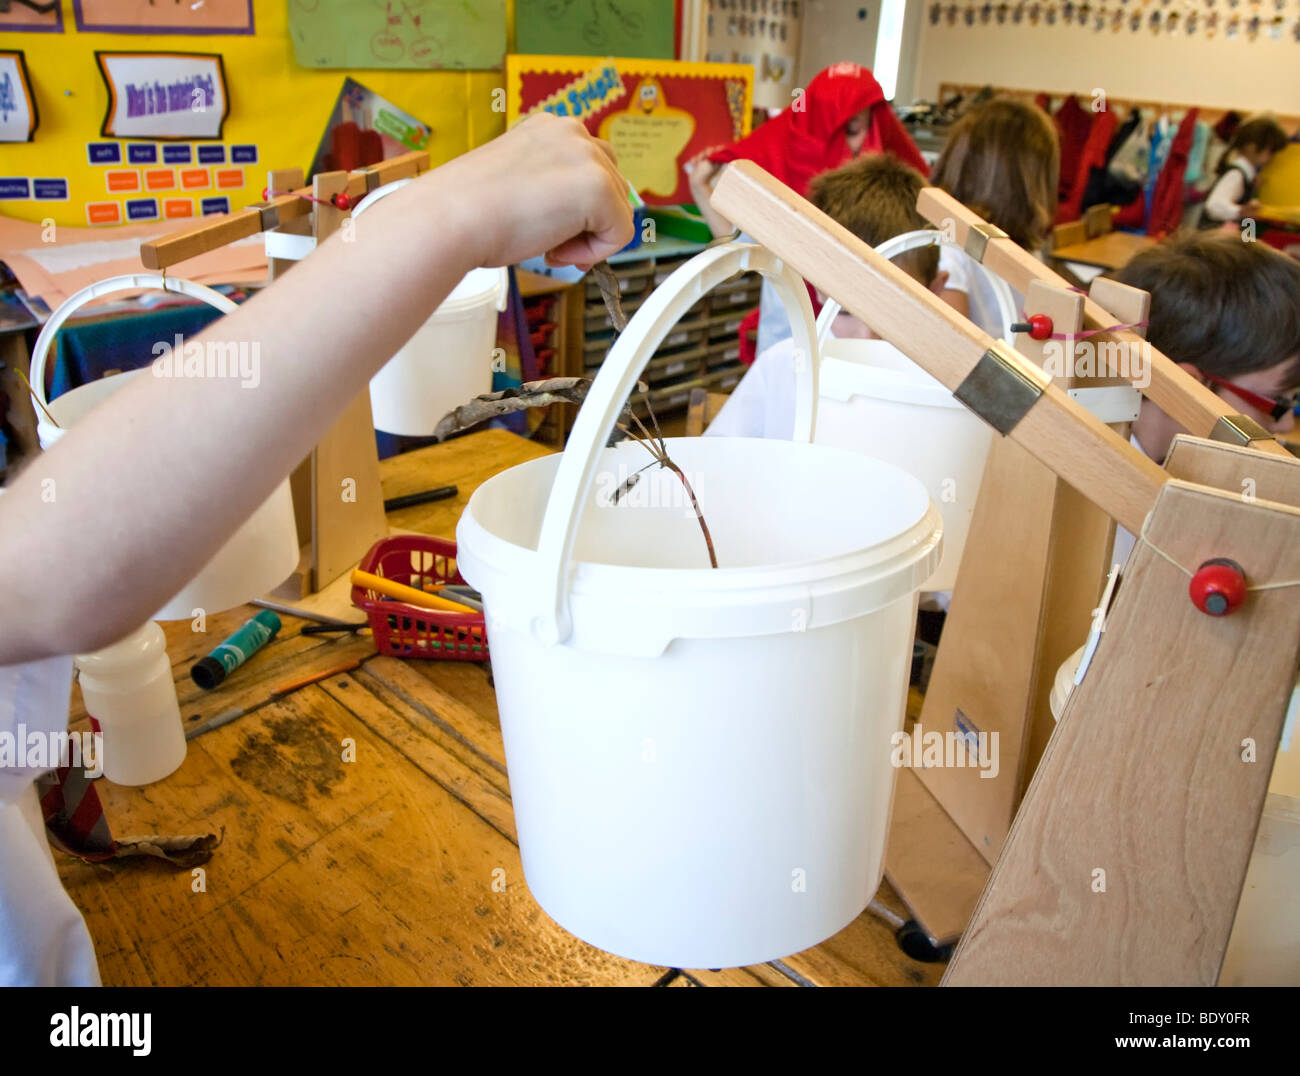 Primary school science experiment - Stock Image